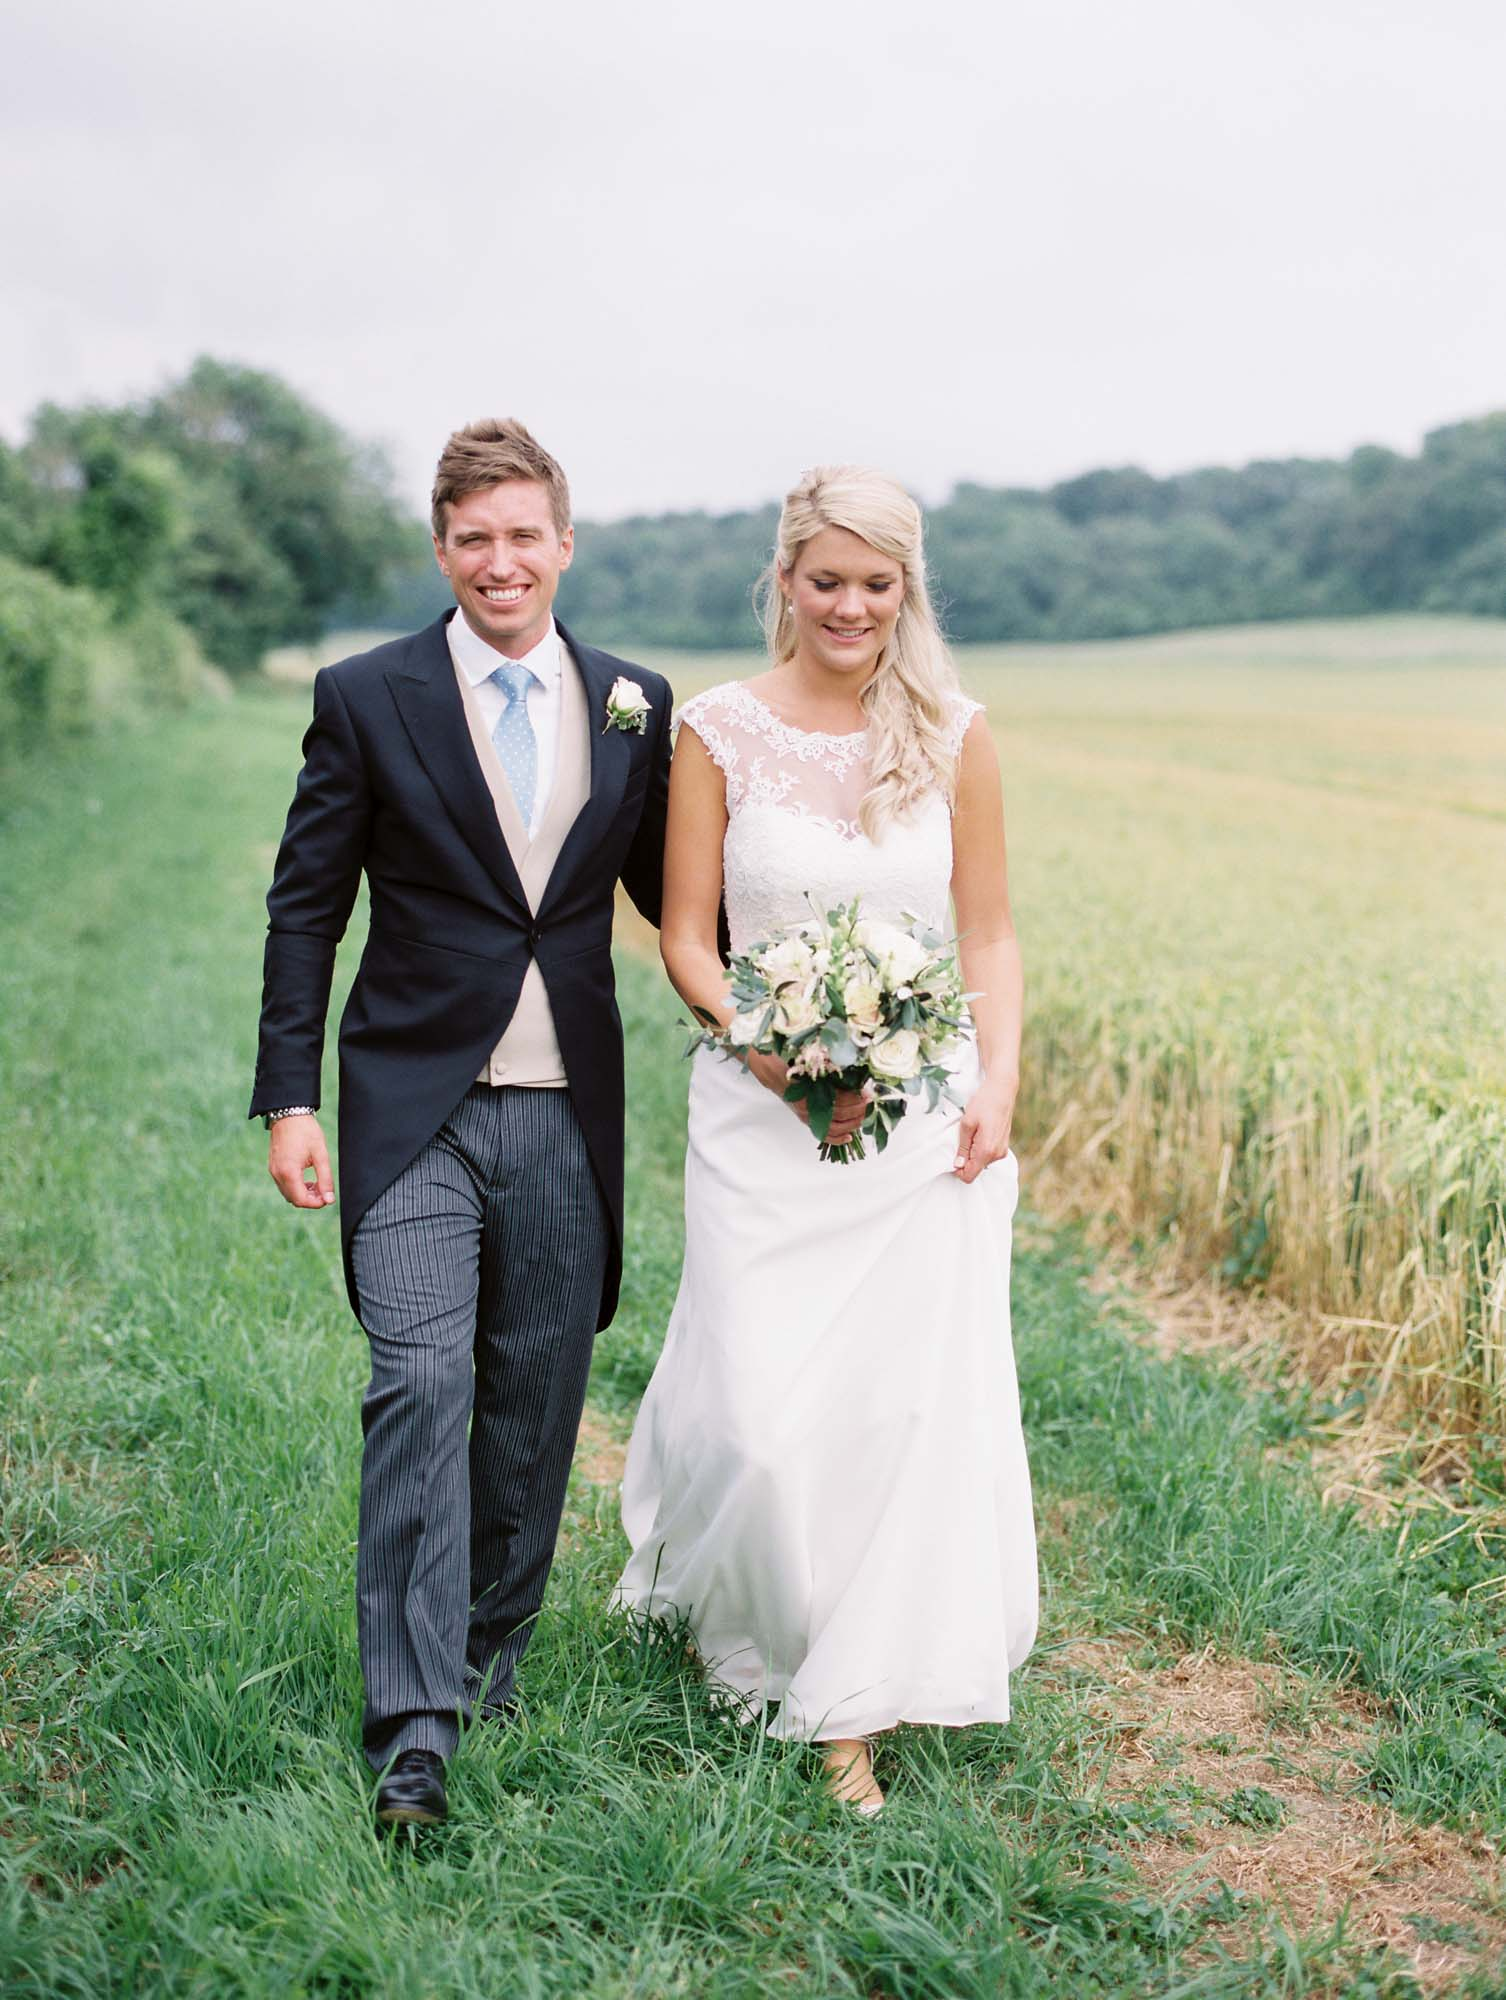 Bride and groom walking next to wheat field captured by luxury film wedding photographer Camilla Arnhold